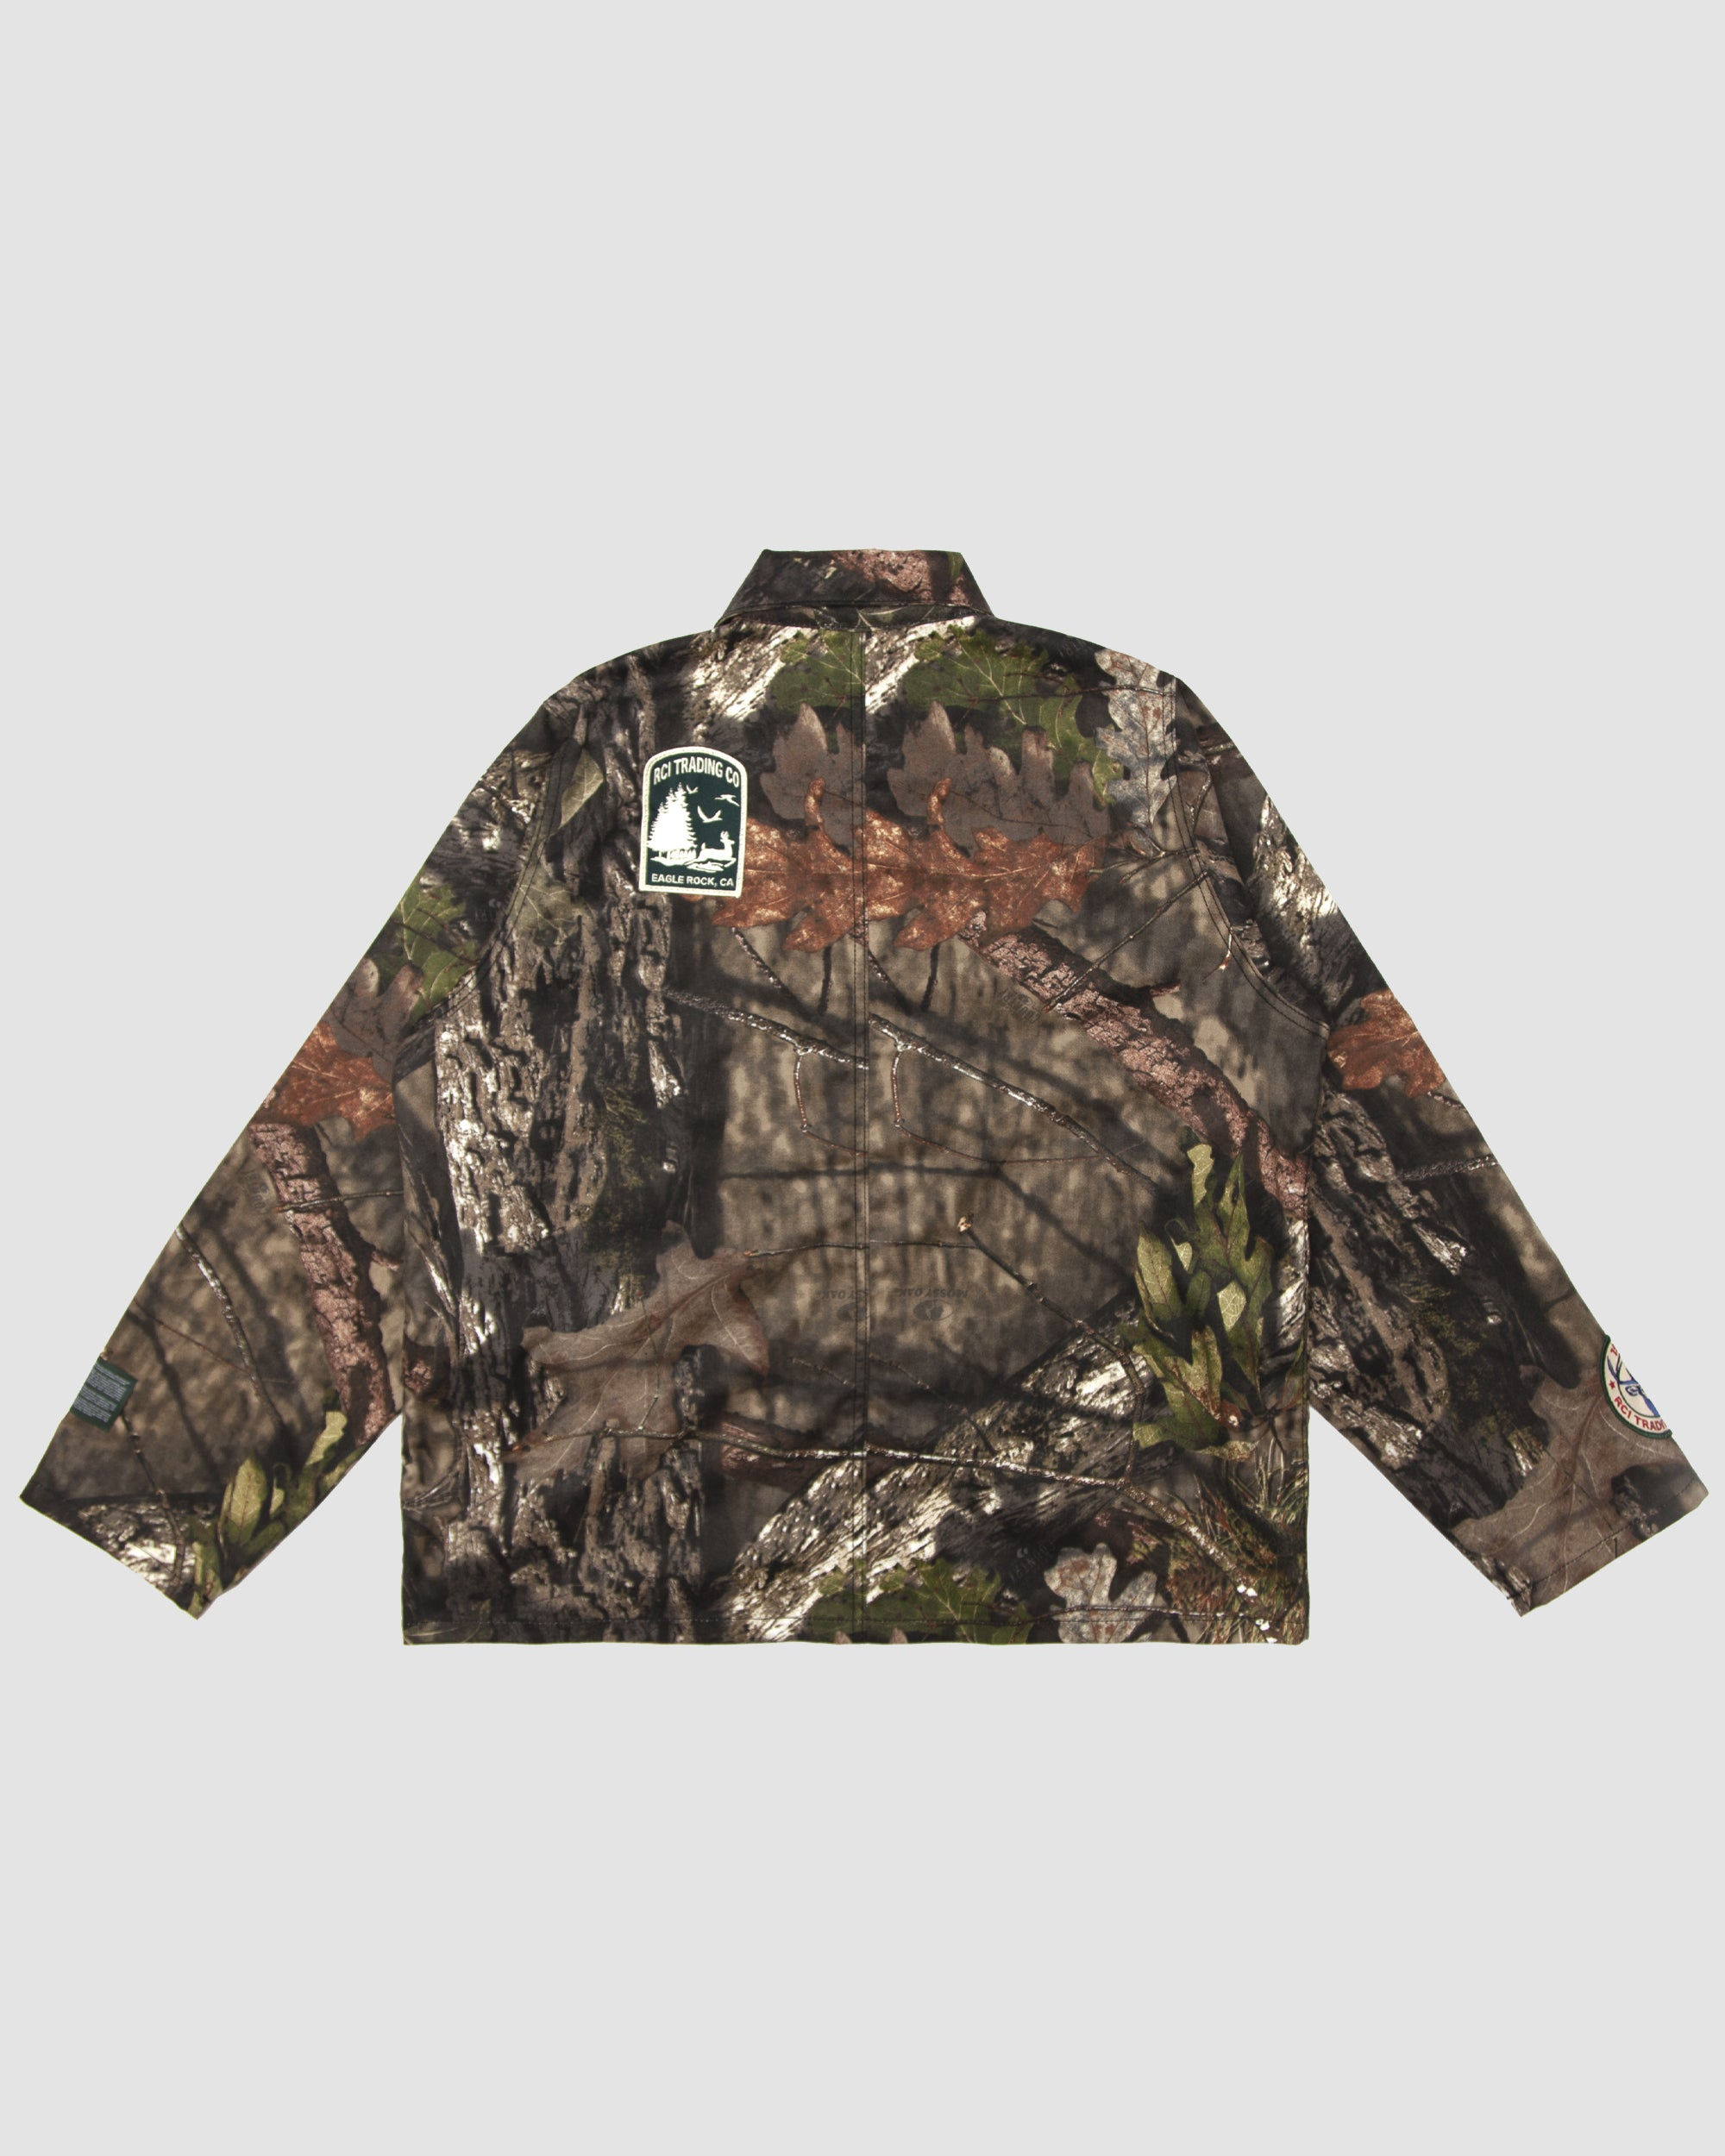 RCI Chore Coat Kit with Real Tree Camo Cotton Twill